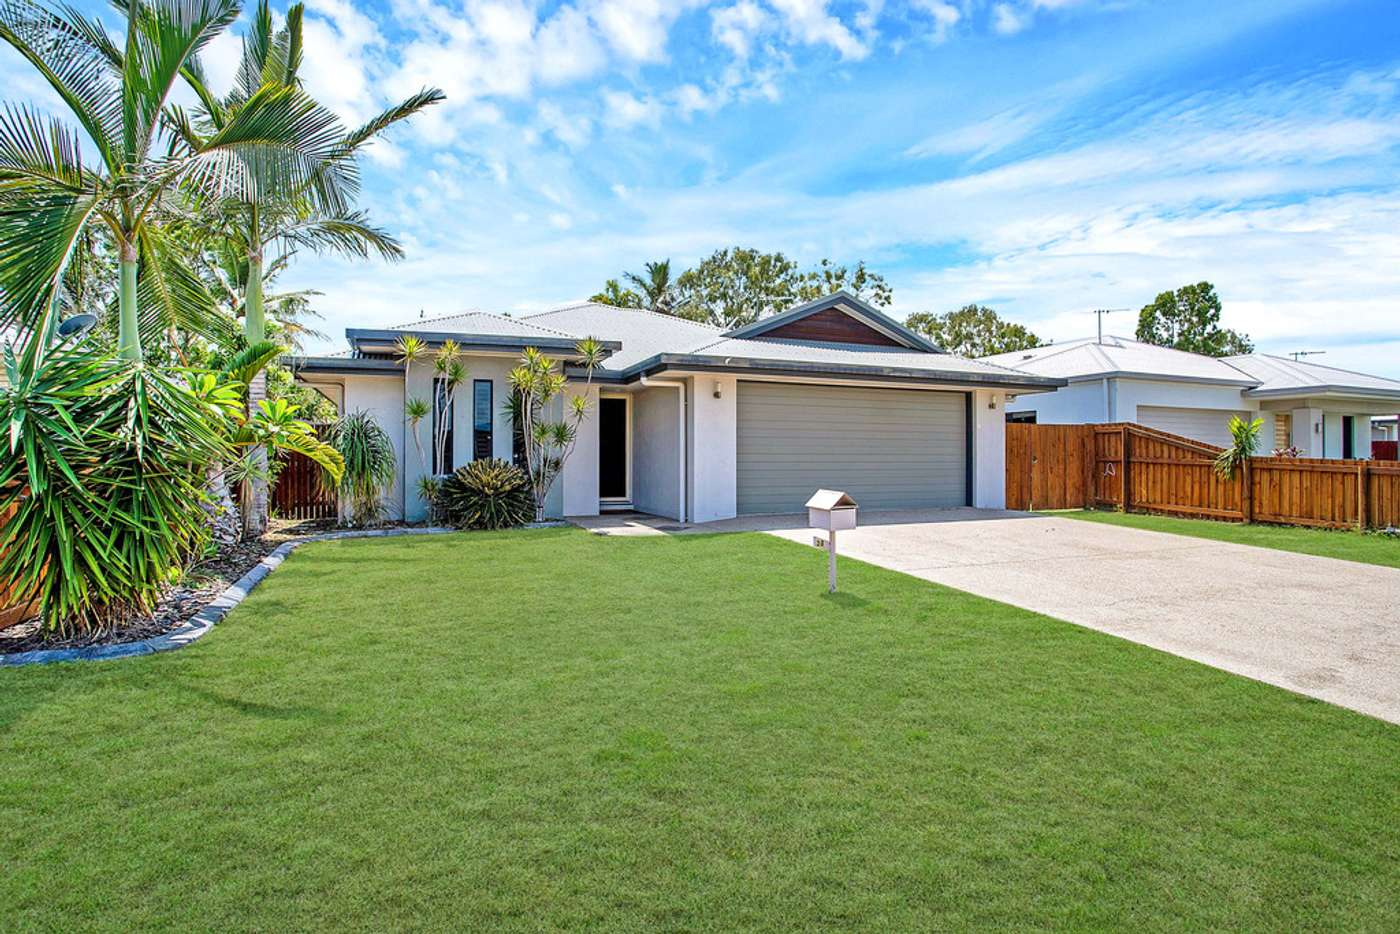 Main view of Homely house listing, 30 Schooner Avenue, Bucasia QLD 4750